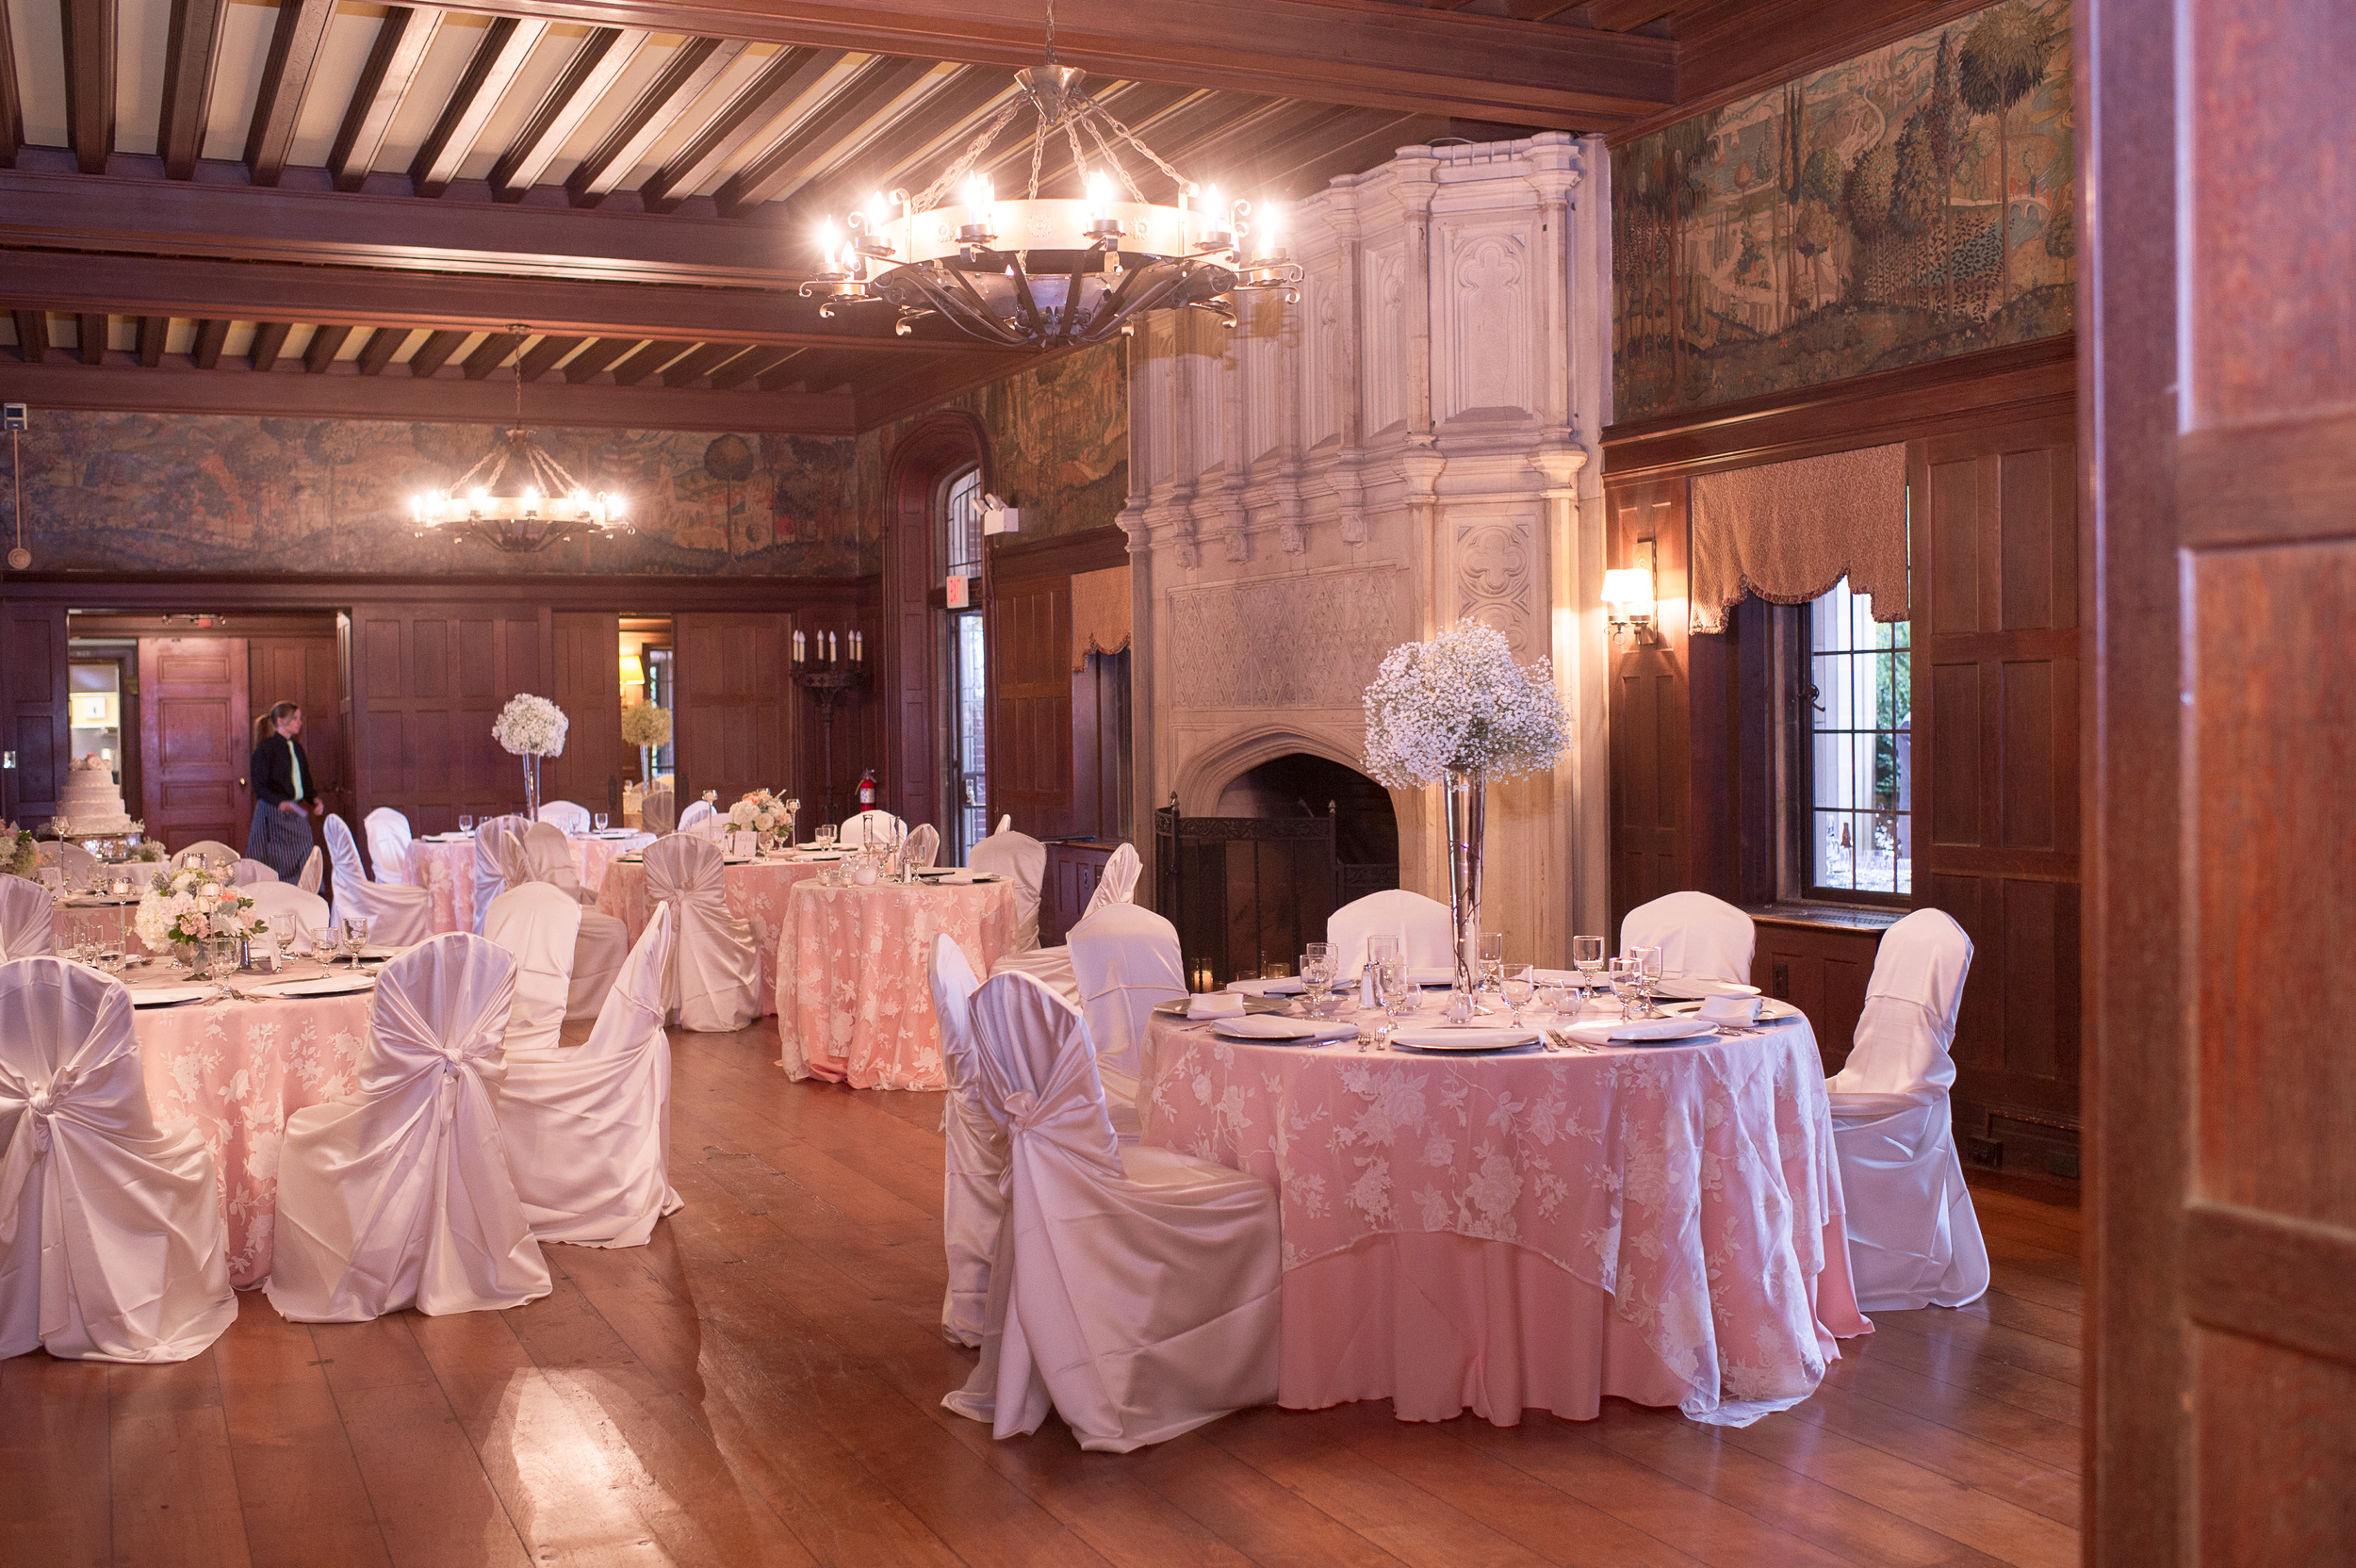 waveny_house_wedding_New_canaan_CT_Amy_Champagne_Events577.jpg